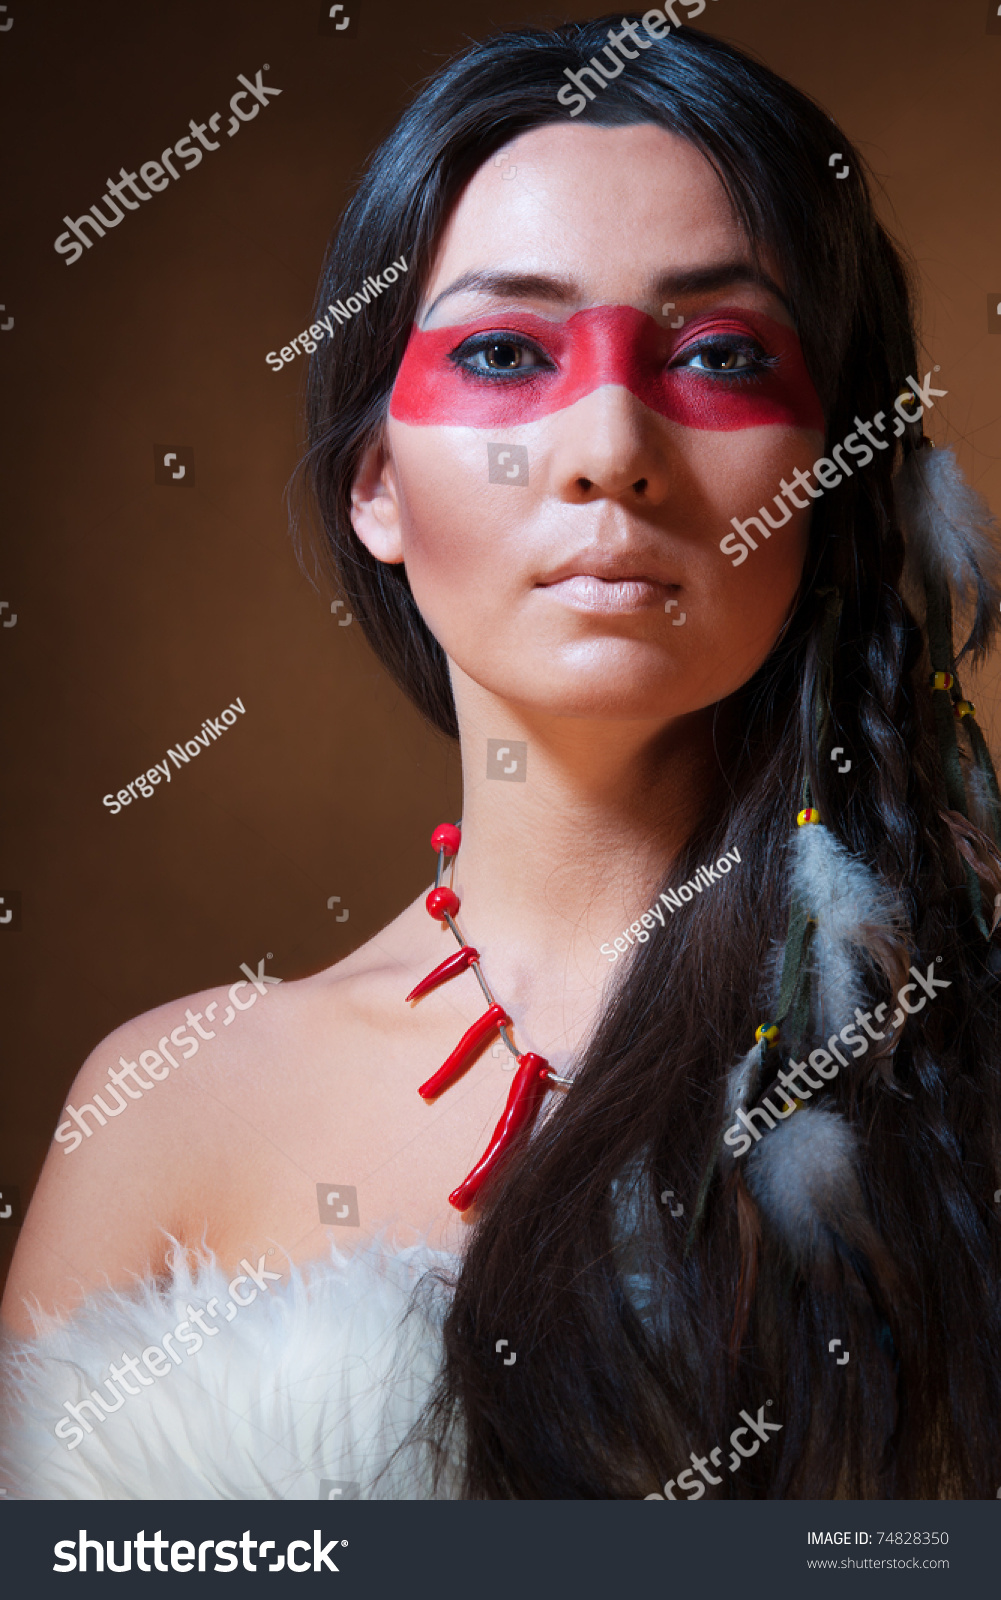 American Indian With Paint Face Camouflage - Studio Photo With Professional Makeup - 74828350 ...